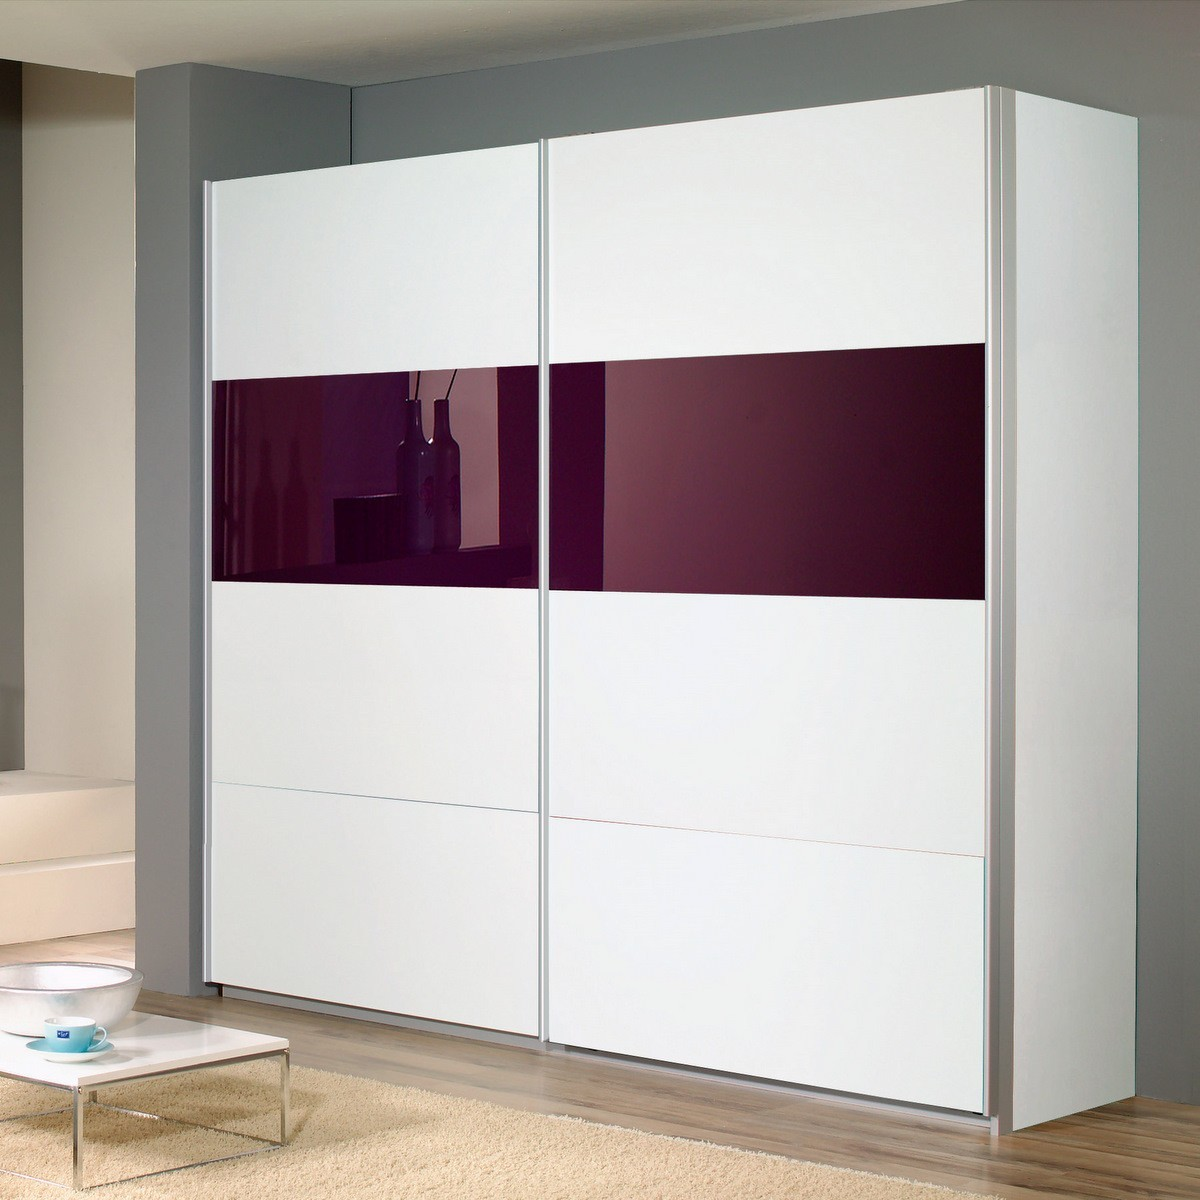 schwebet renschrank quadra in wei glas lila 271cm ebay. Black Bedroom Furniture Sets. Home Design Ideas